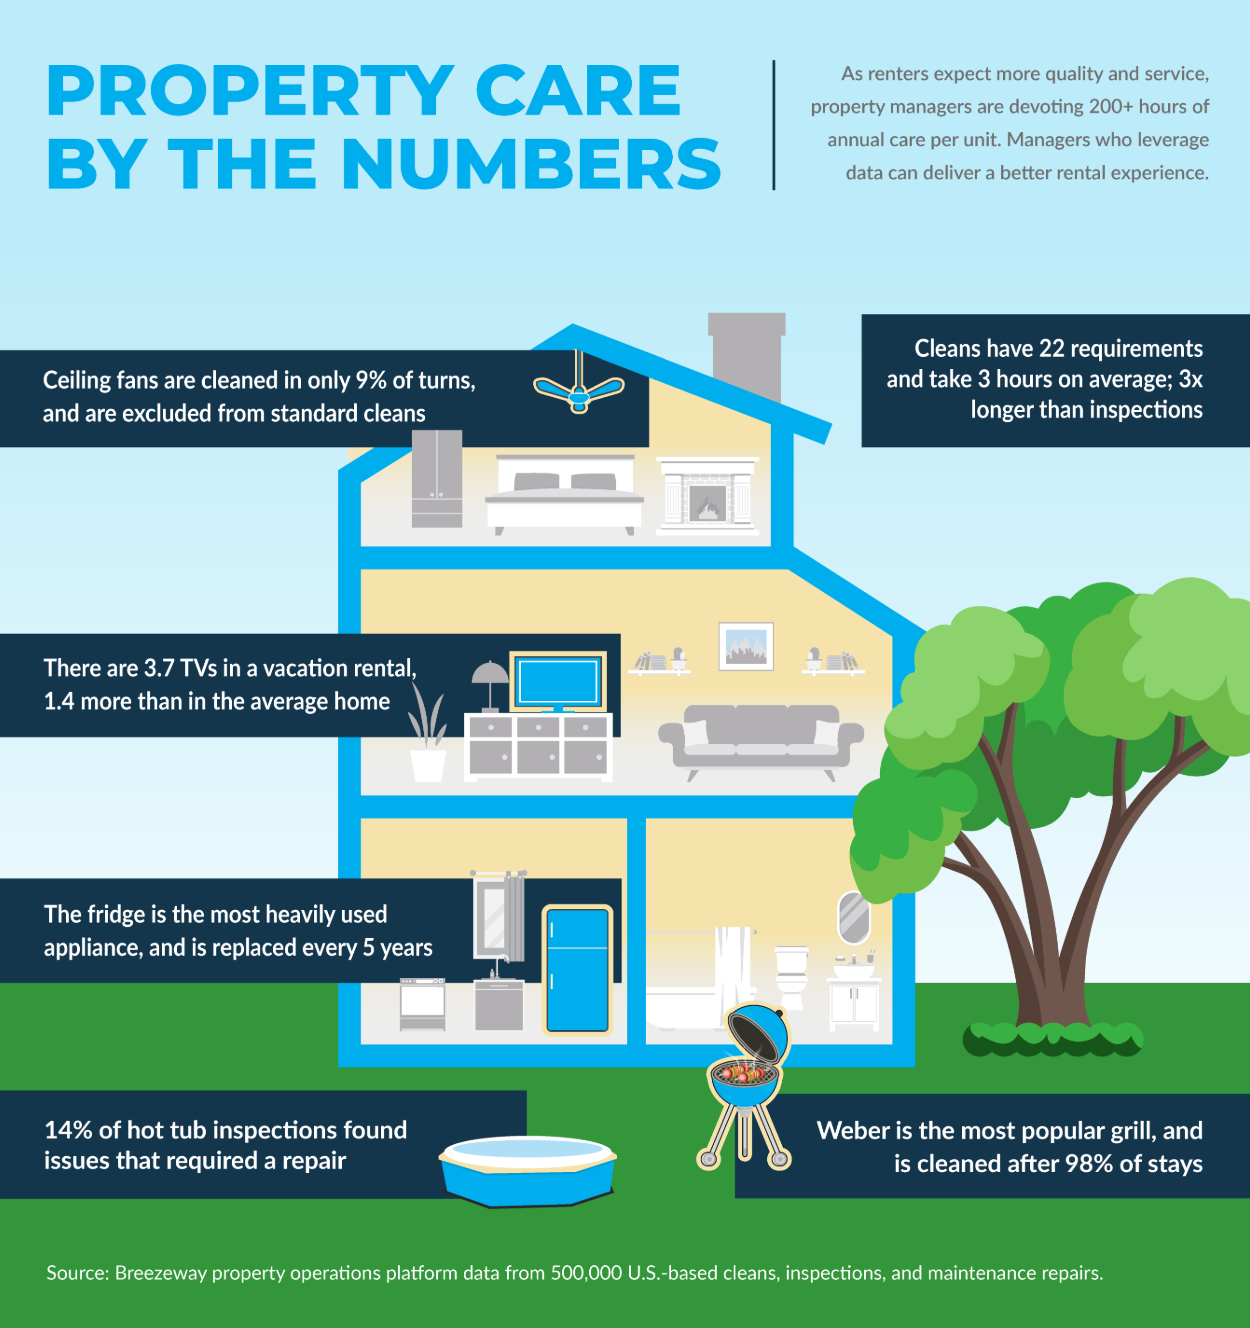 Property Care by the Numbers